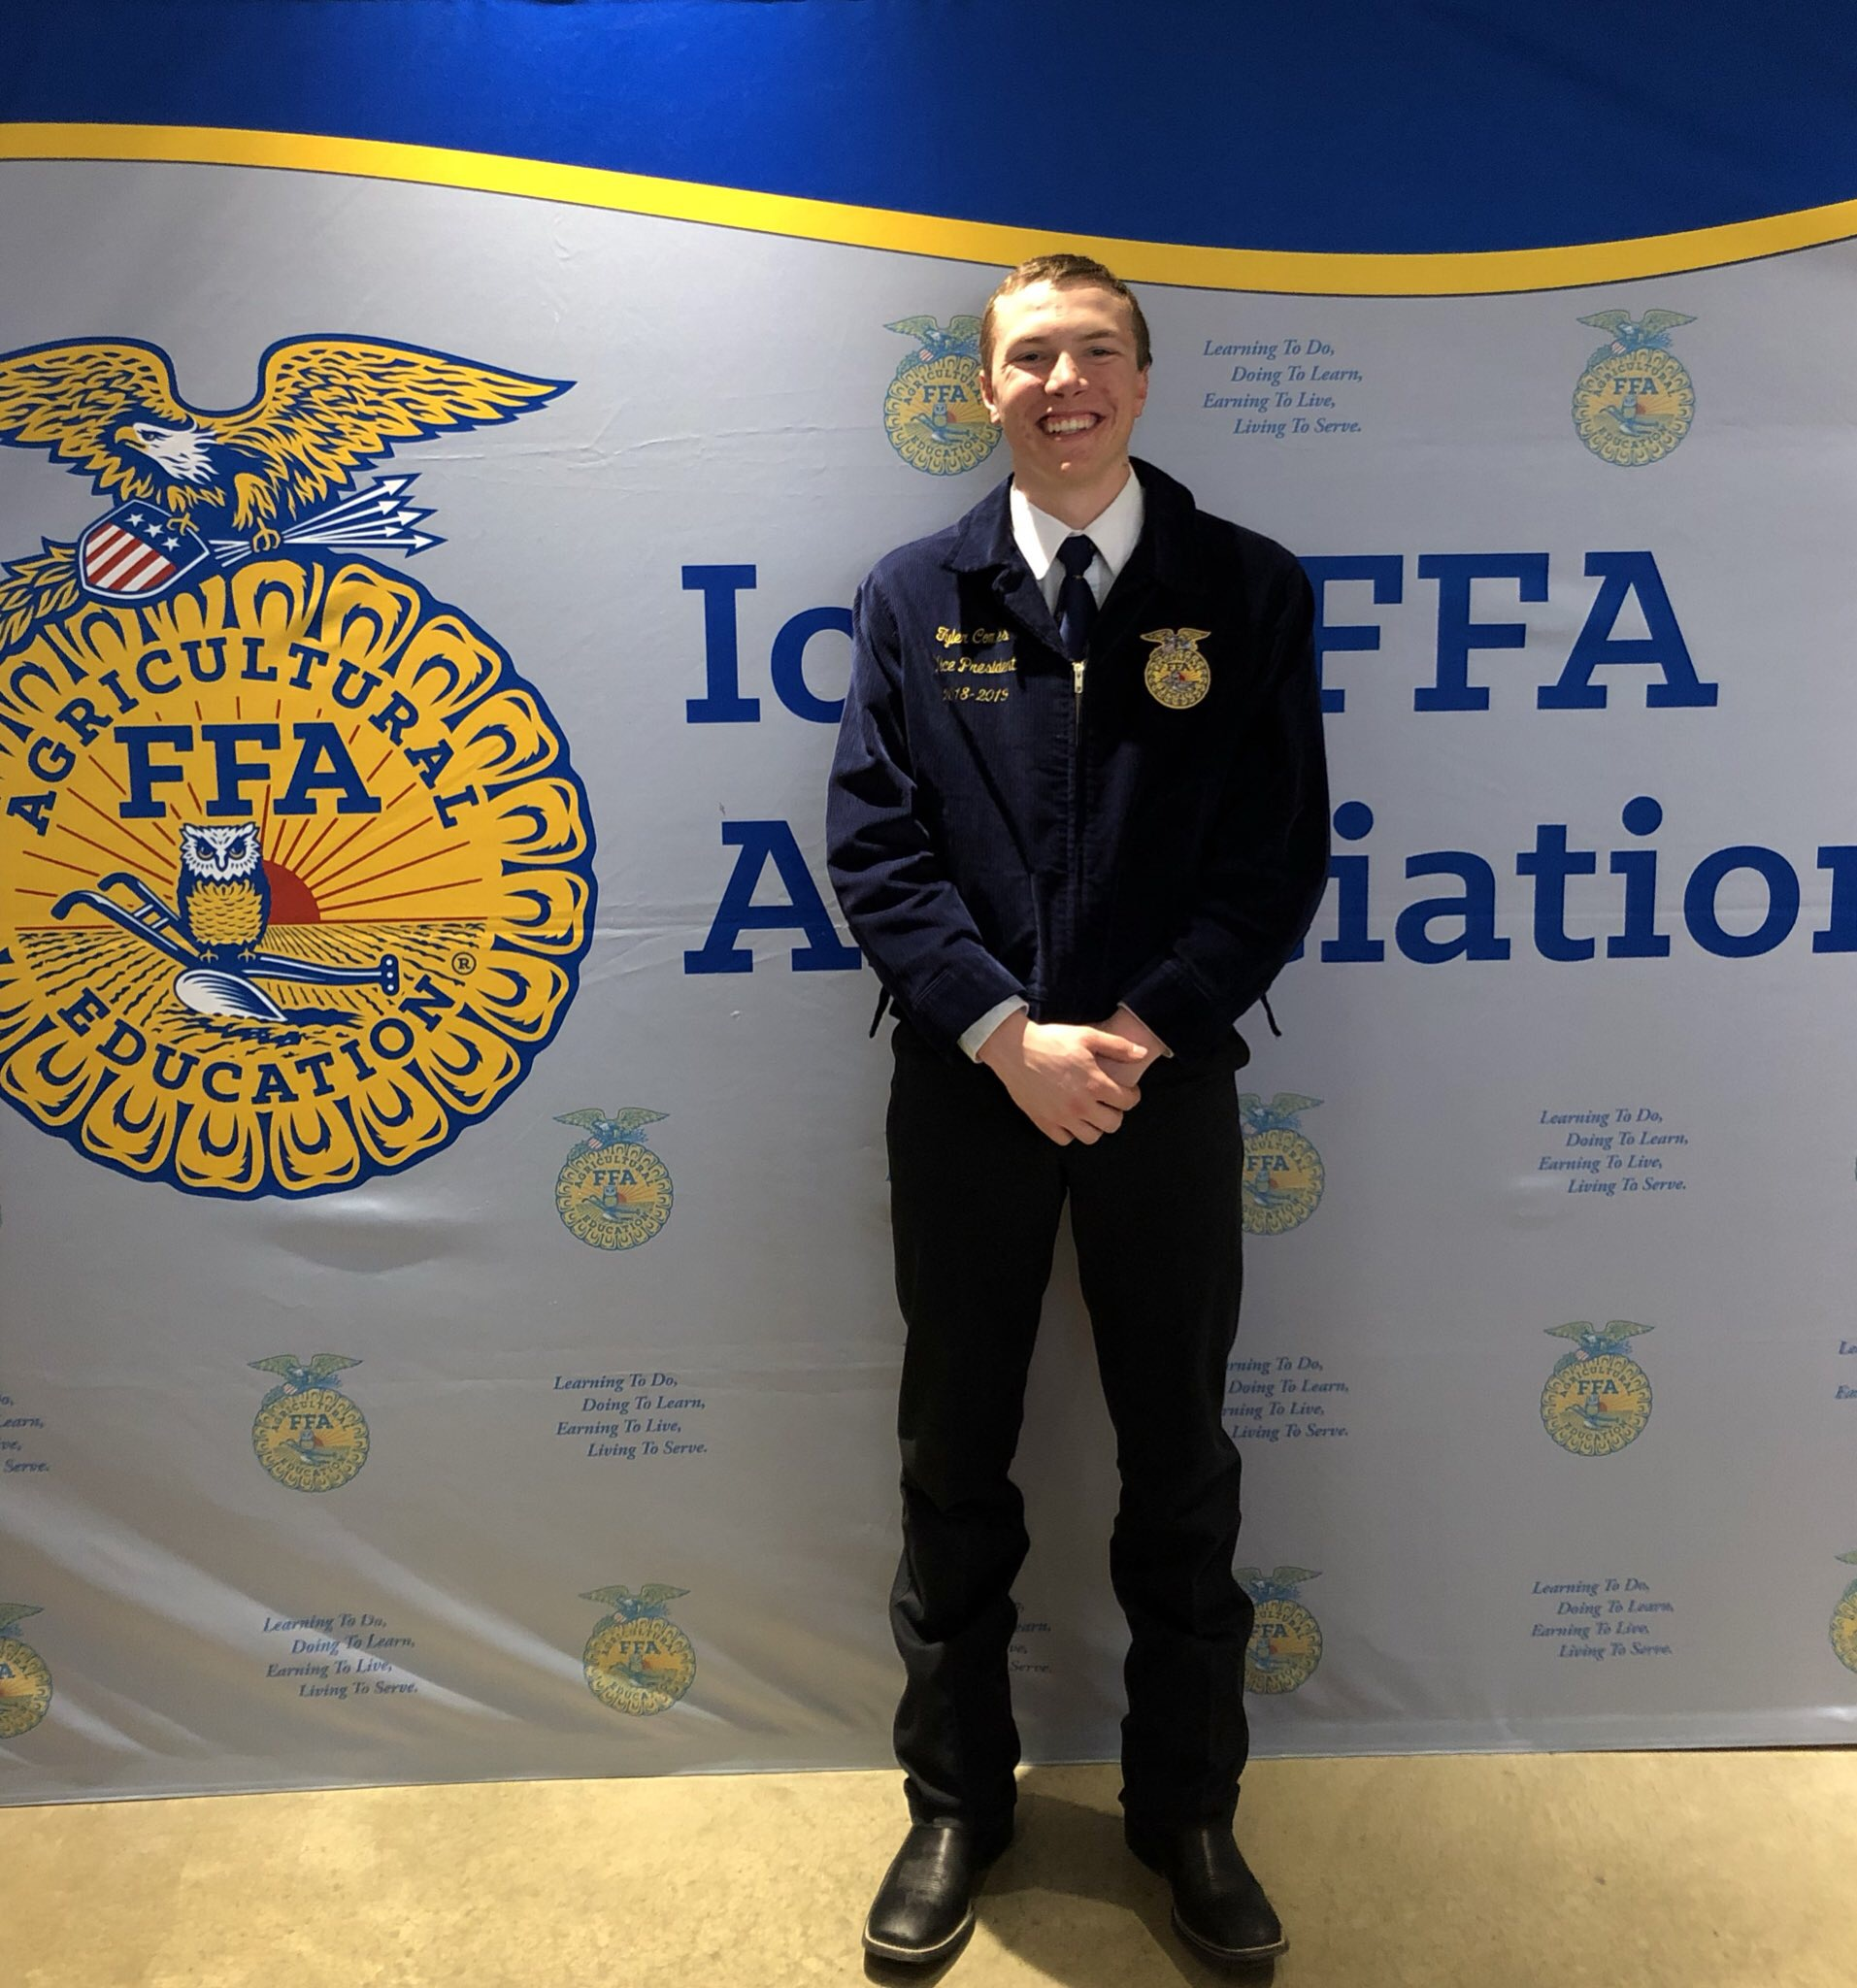 Handson Kweekkas Serre Comes Elected As A 2019 20 Iowa Ffa State Officers Kjan Radio